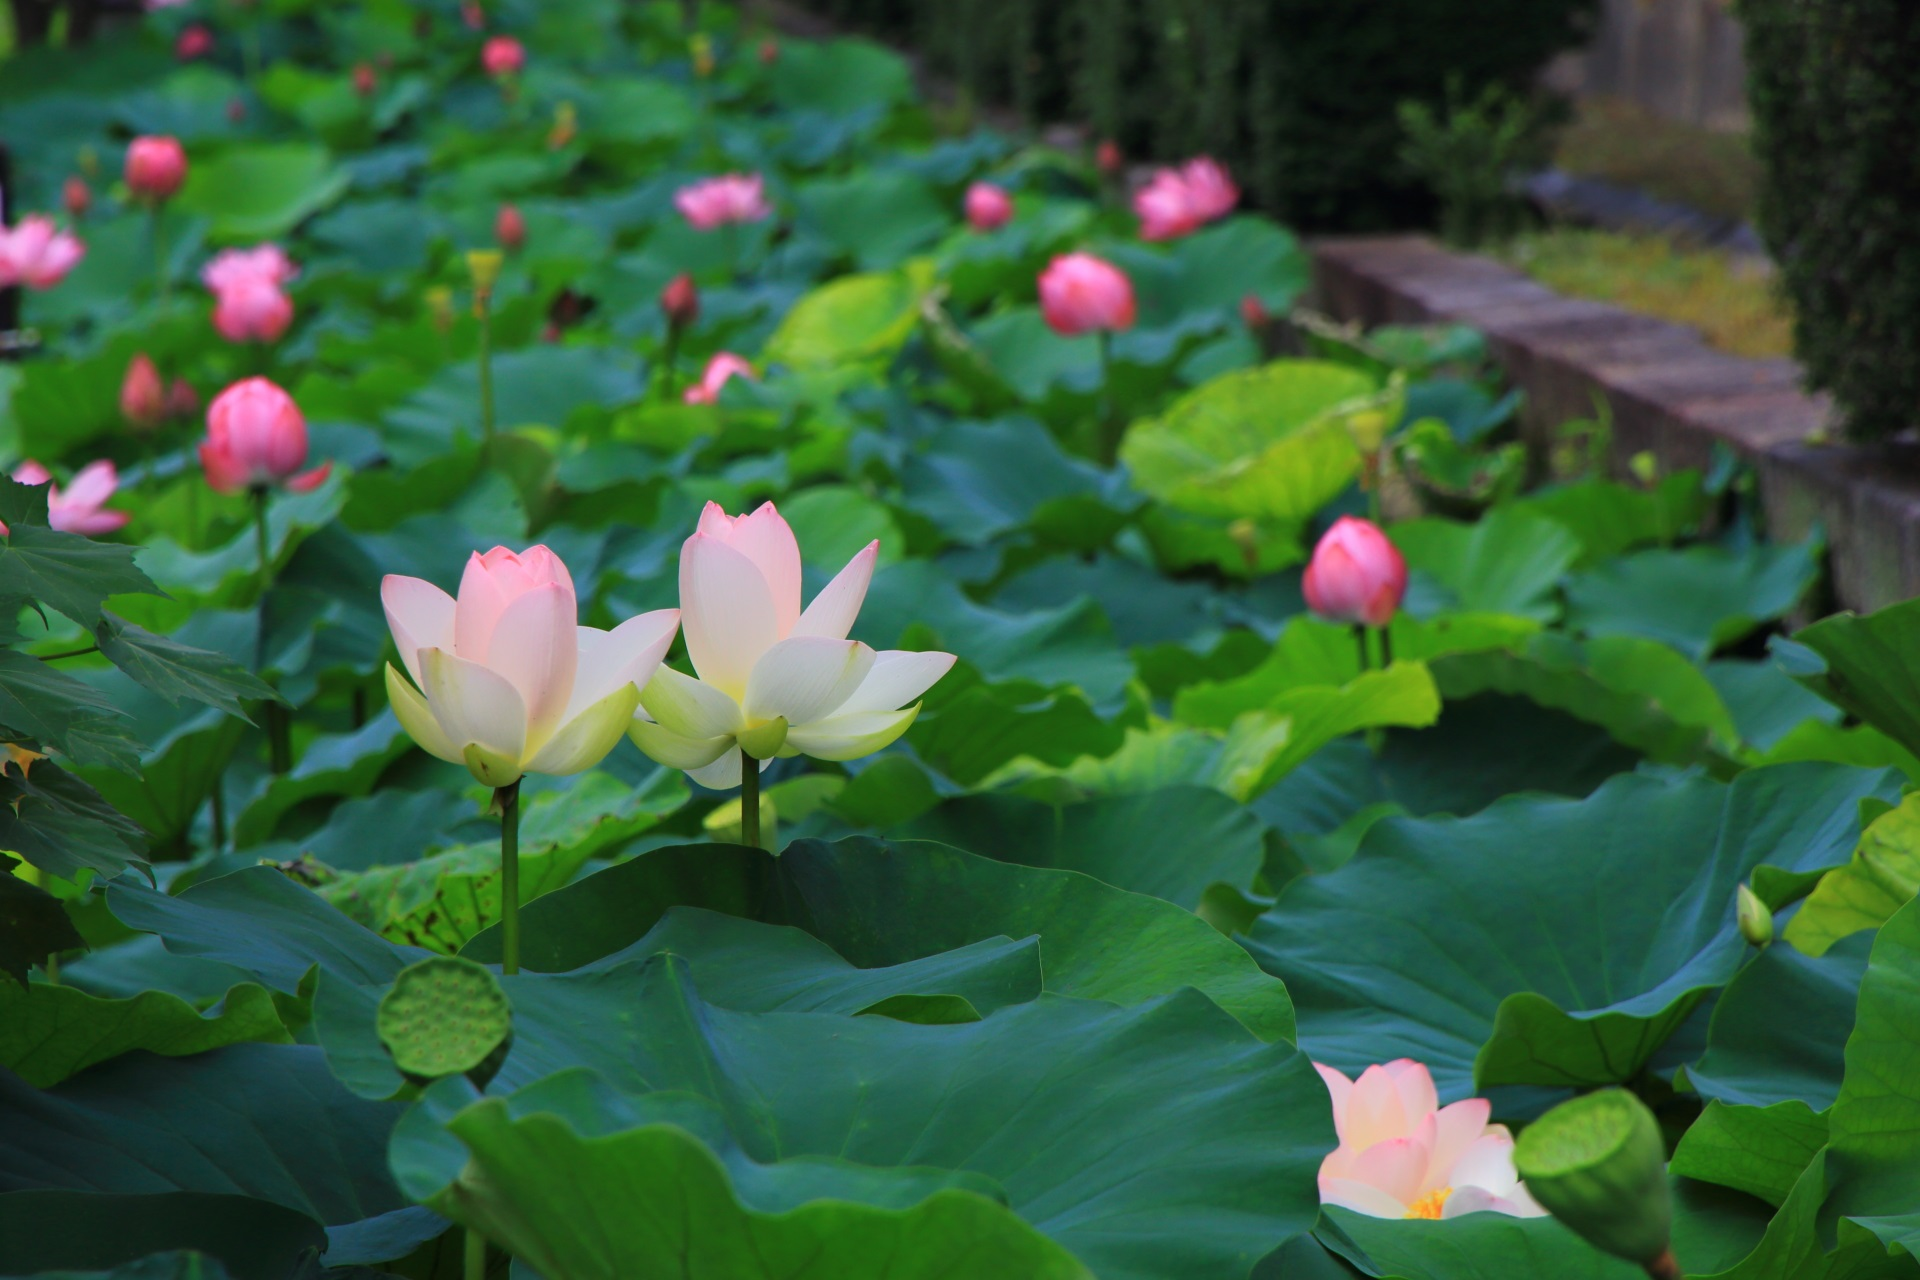 Lotus flower of Higashi-Honganji-Temple in Kyoto,Japan